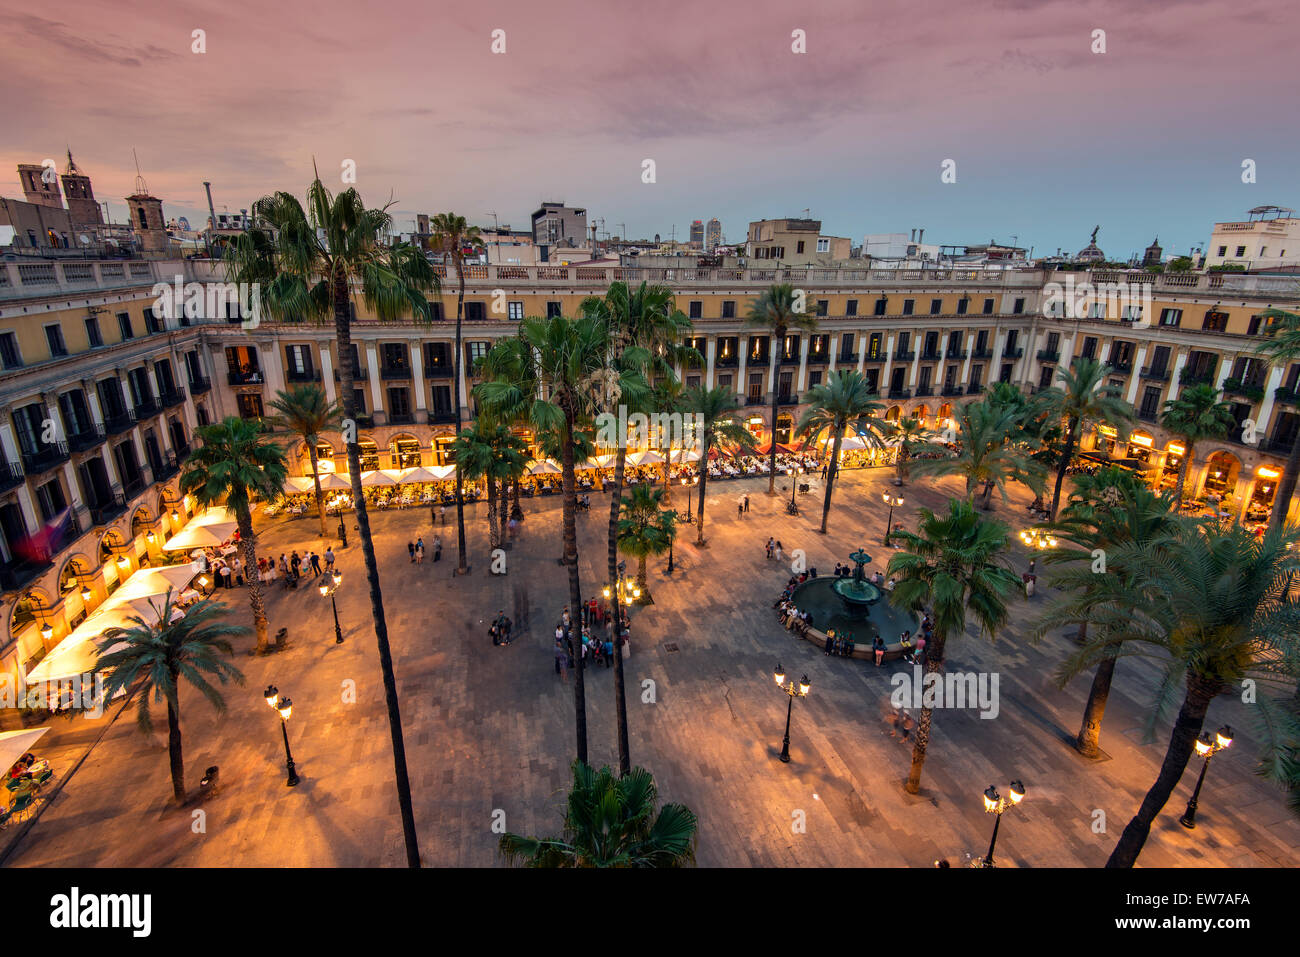 Sunset top view over Placa Reial or Plaza Real, Barcelona, Catalonia, Spain - Stock Image